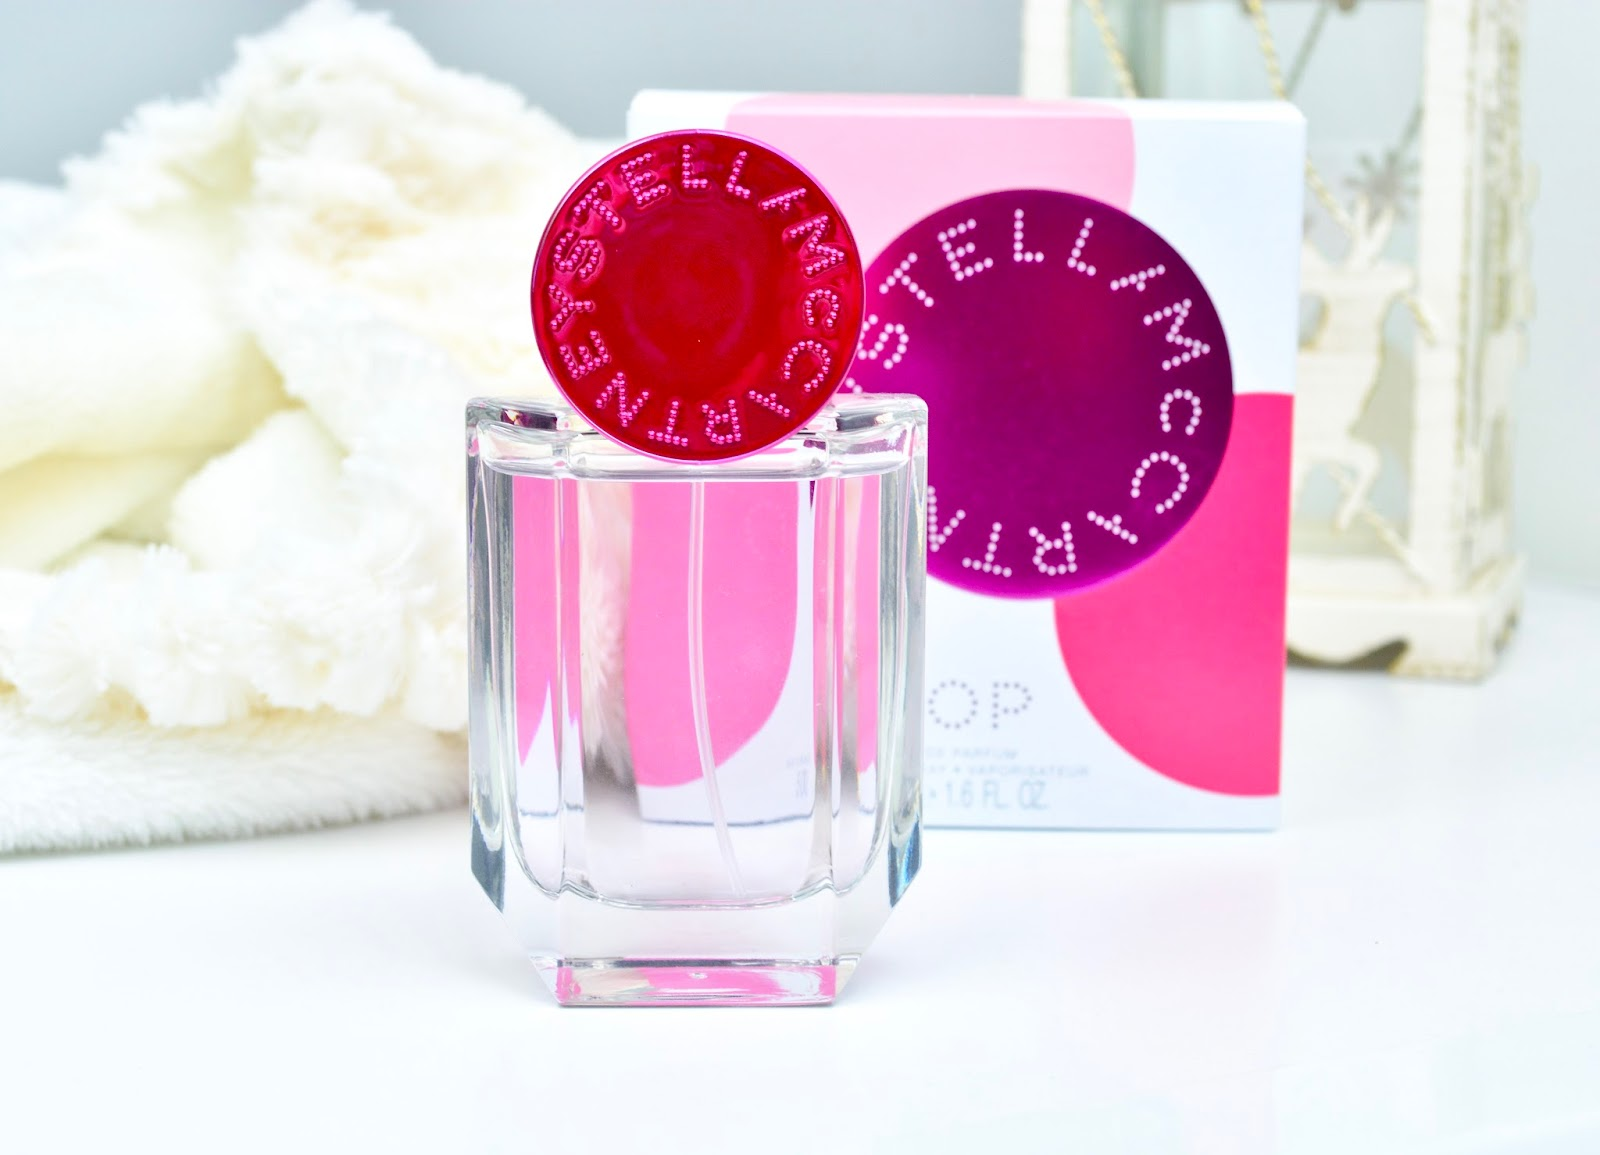 Stella McCartney POP, POP Perfume, Fragrance Direct, Fragrance, Perfume, Woman, Floral Perfume, Beauty